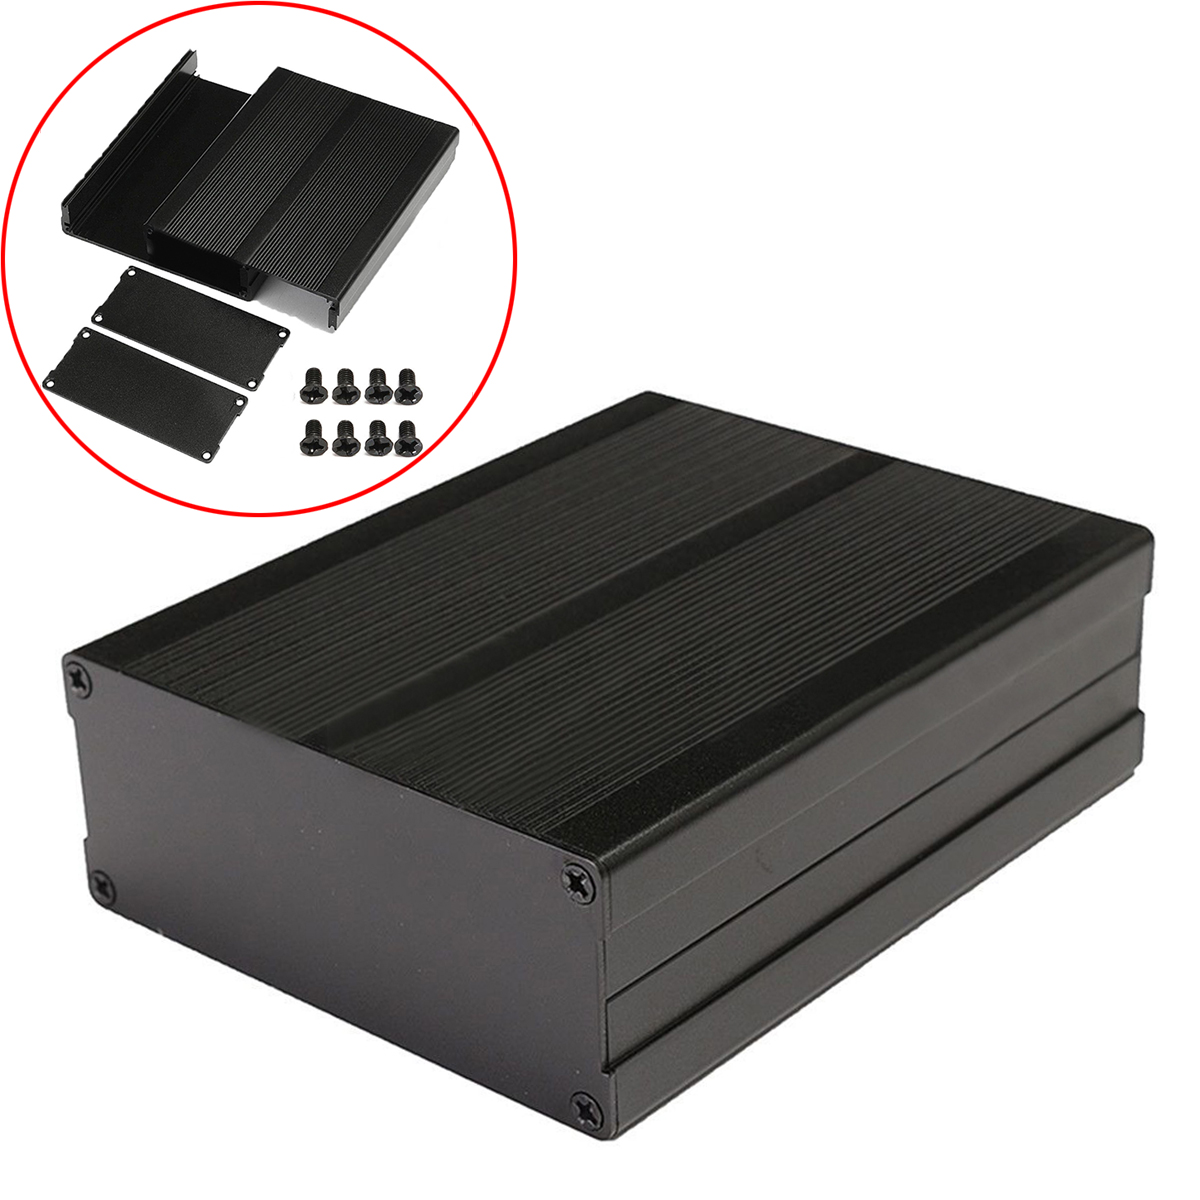 Mayitr Split Body Aluminum Box Enclosure DIY Electronic Project Case Black Aluminum Instrument Case with 8pcs Screws 120*97*40mm drdj1 aluminum 10v 1000uf electrolytic capacitor for diy project black 50 pcs